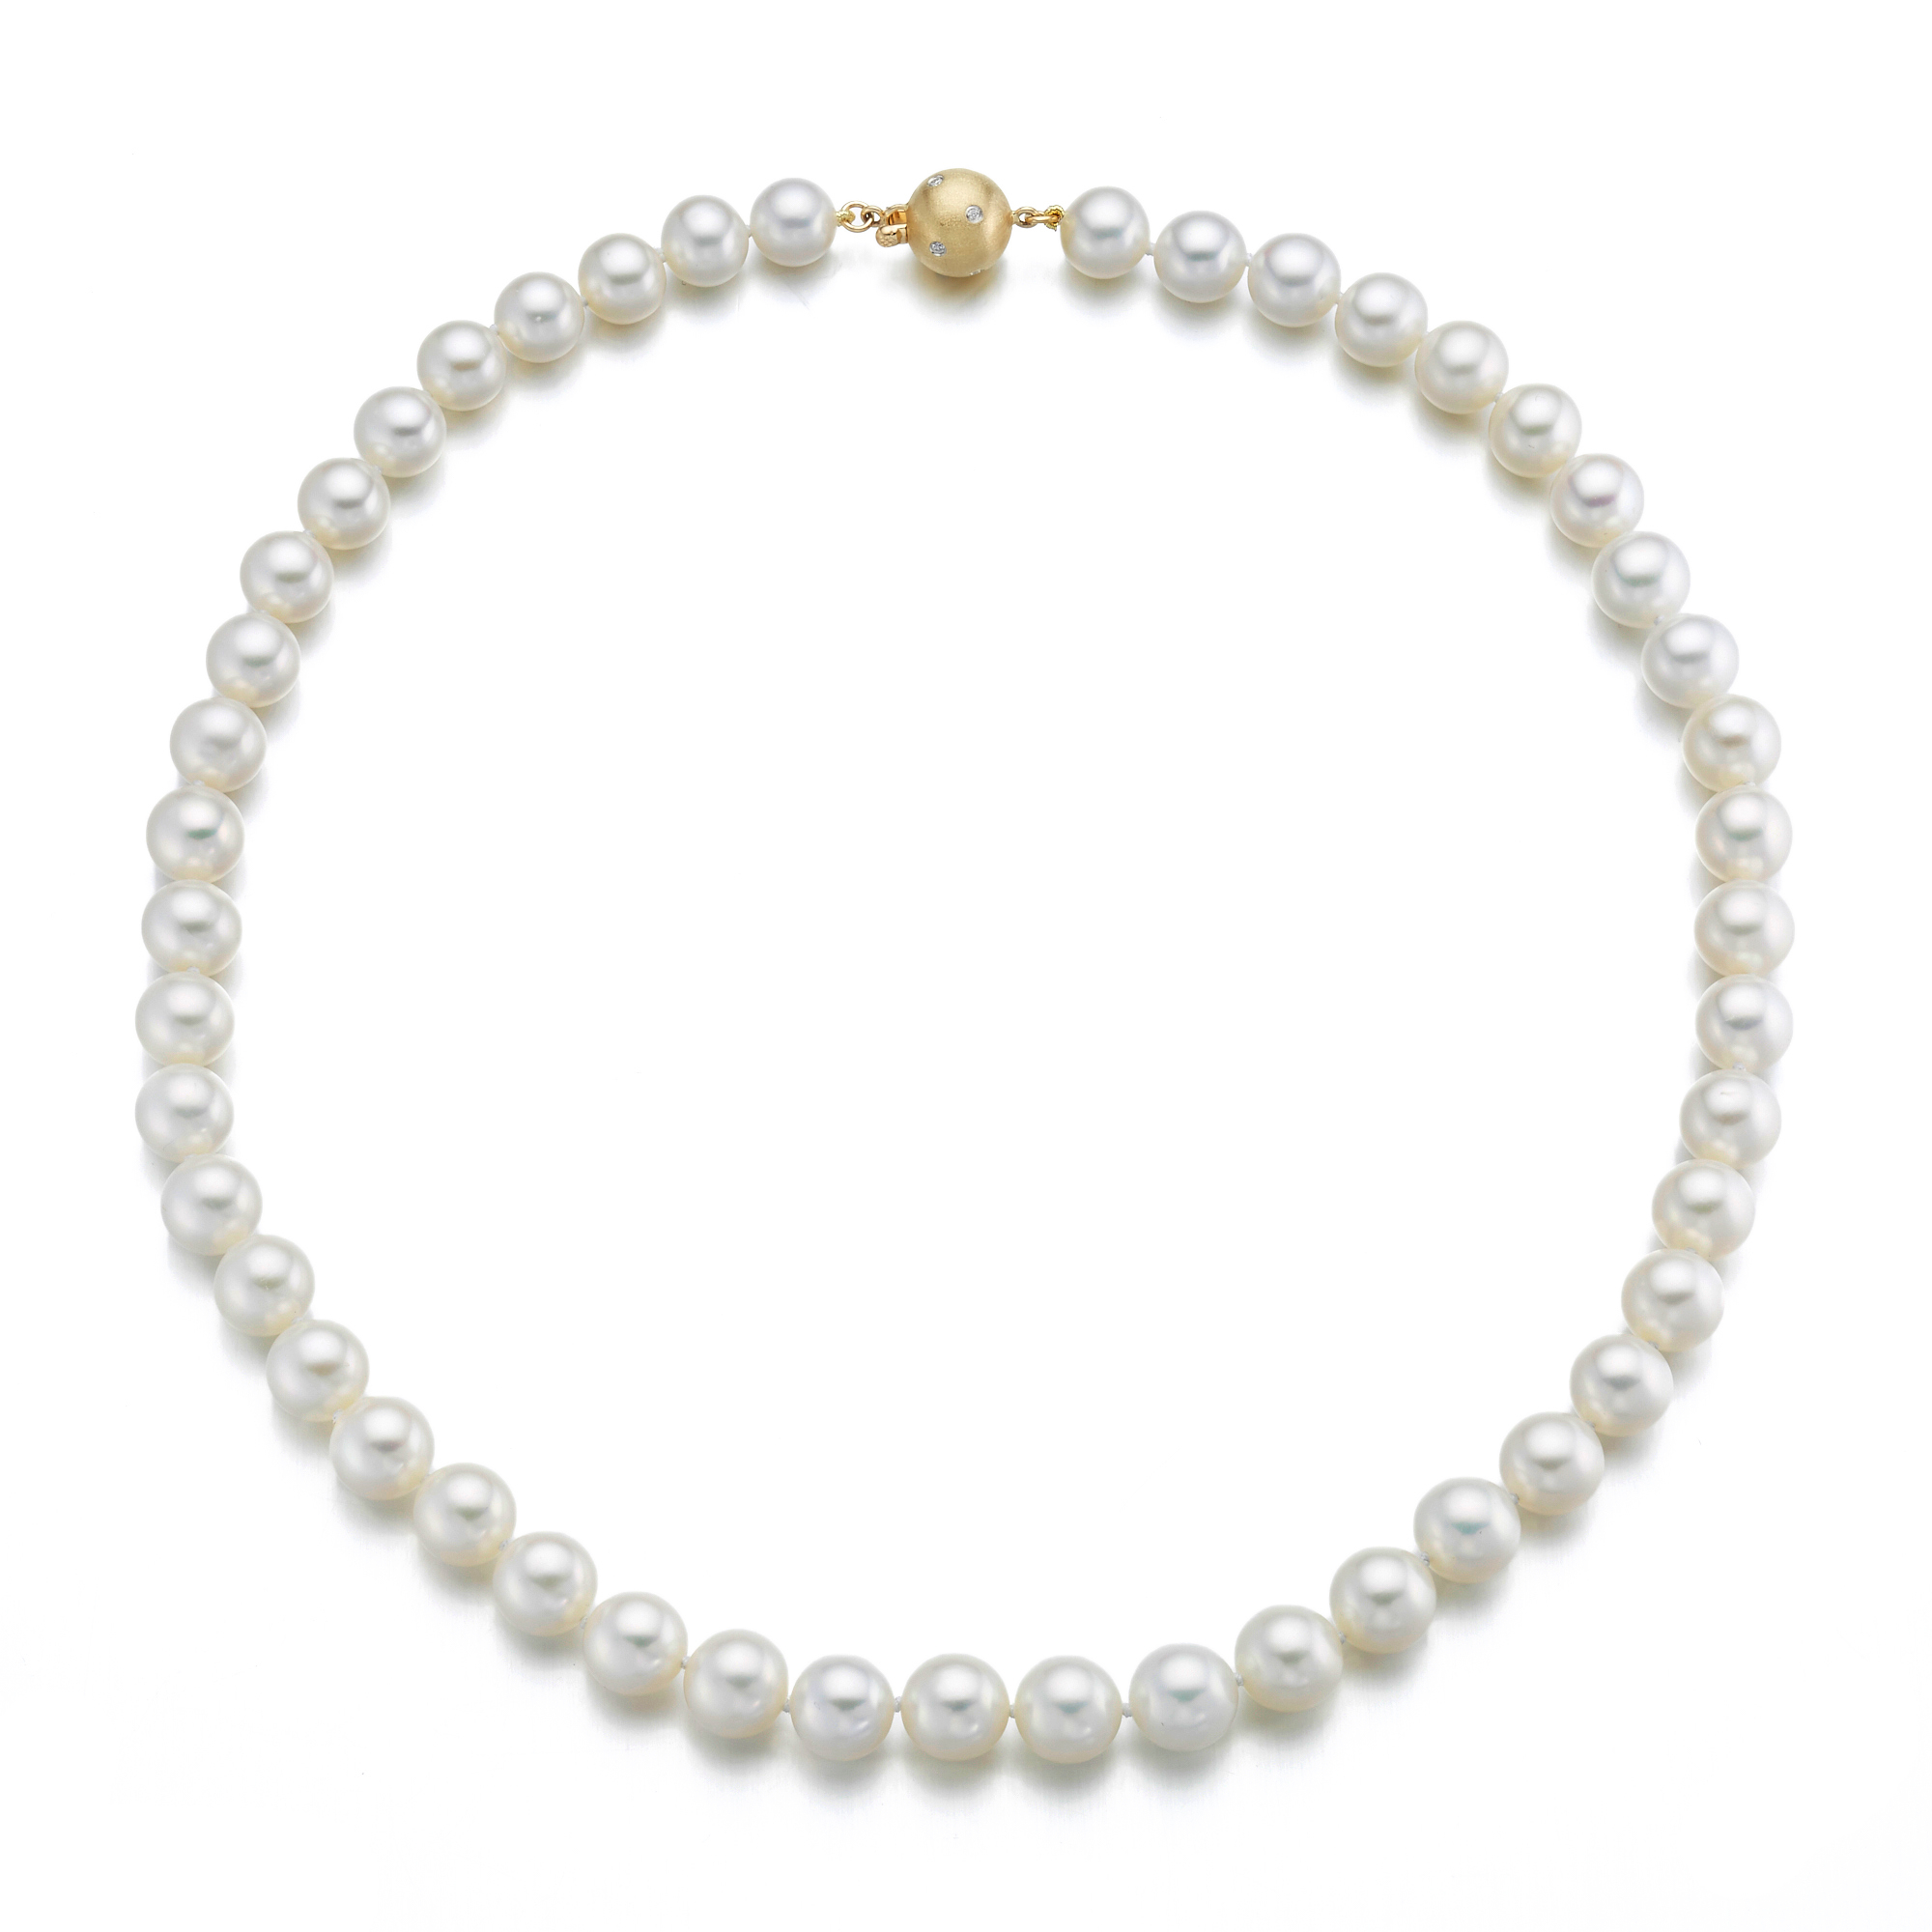 Gump's White Freshwater Pearl Necklaces